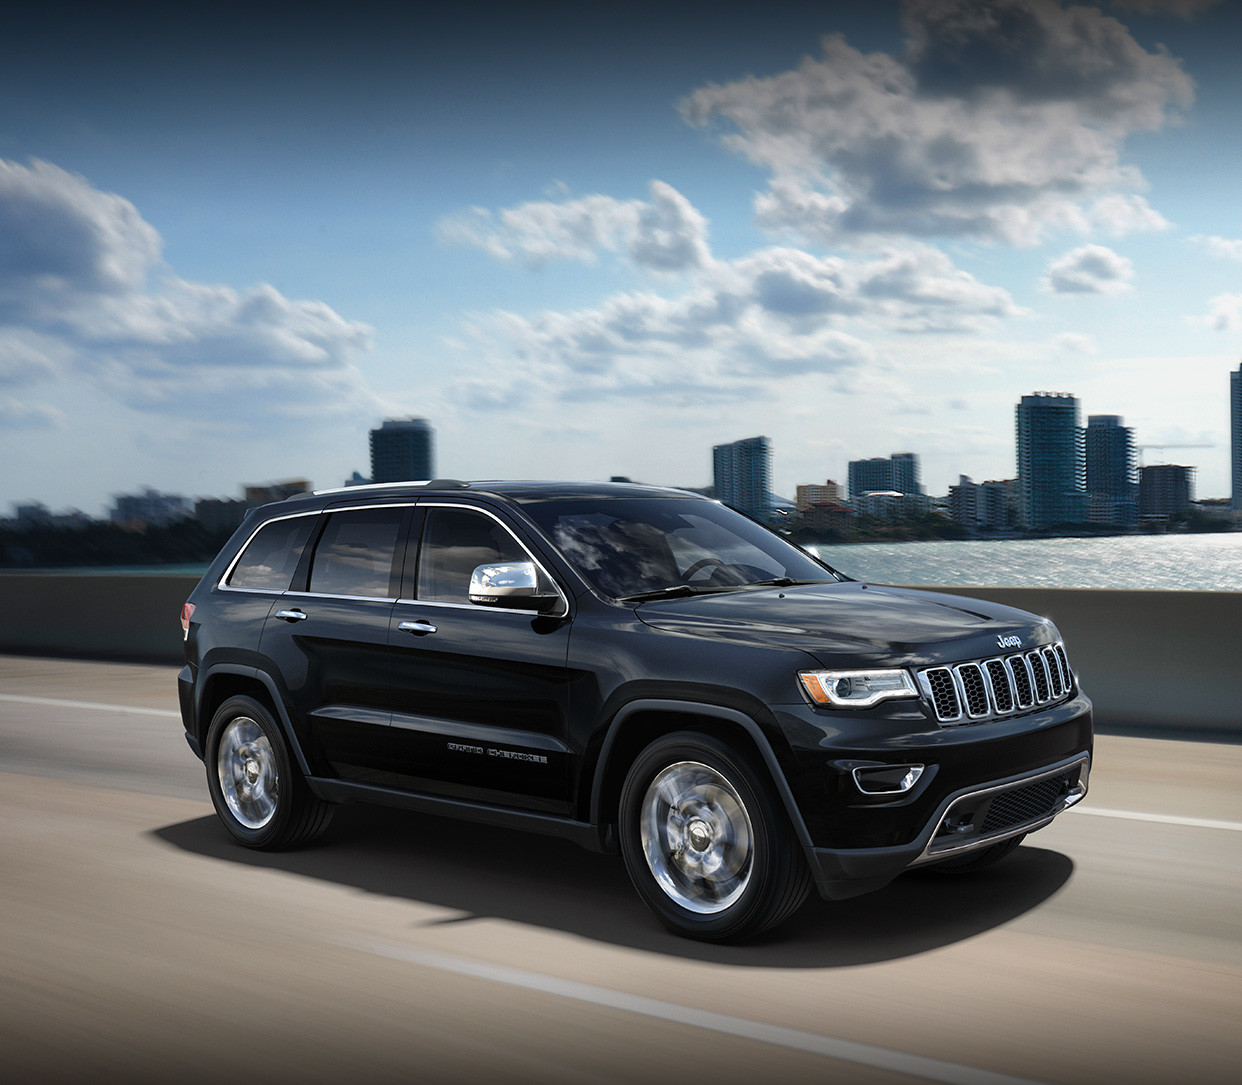 Black 2019 Jeep Grand Cherokee Speeding Through the Roads in Front of a City Skyline